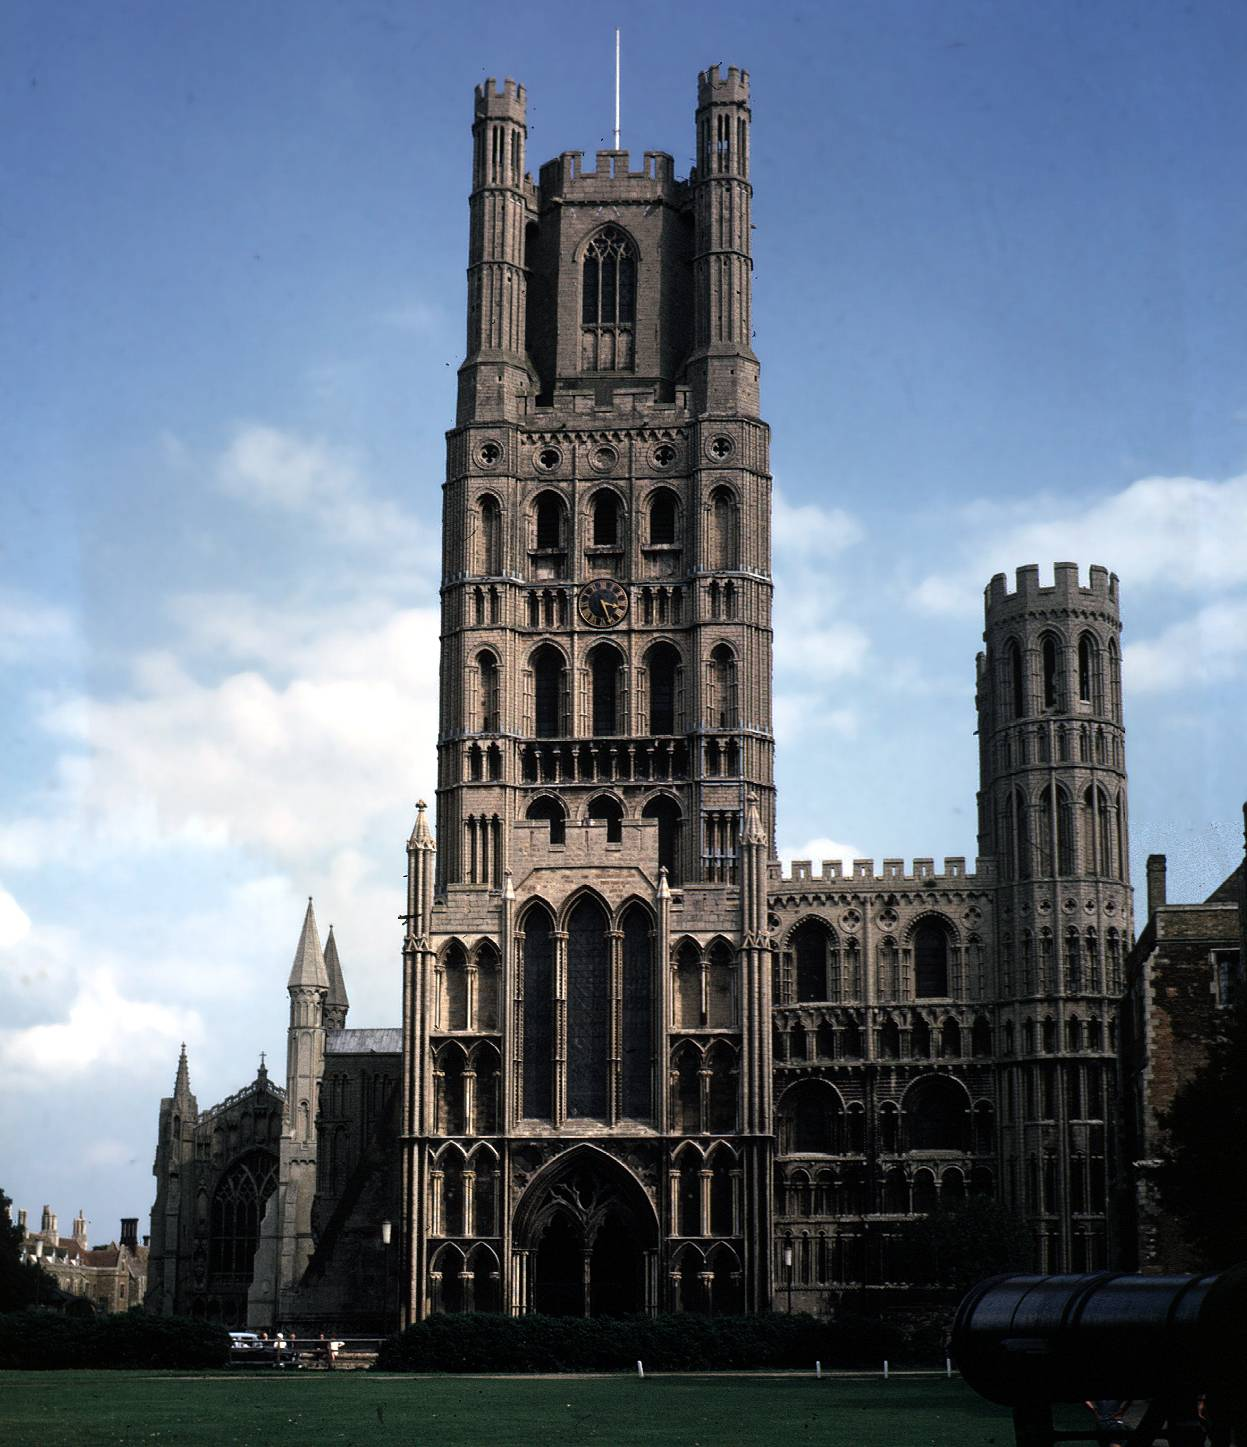 Ely_cathedral_exterior